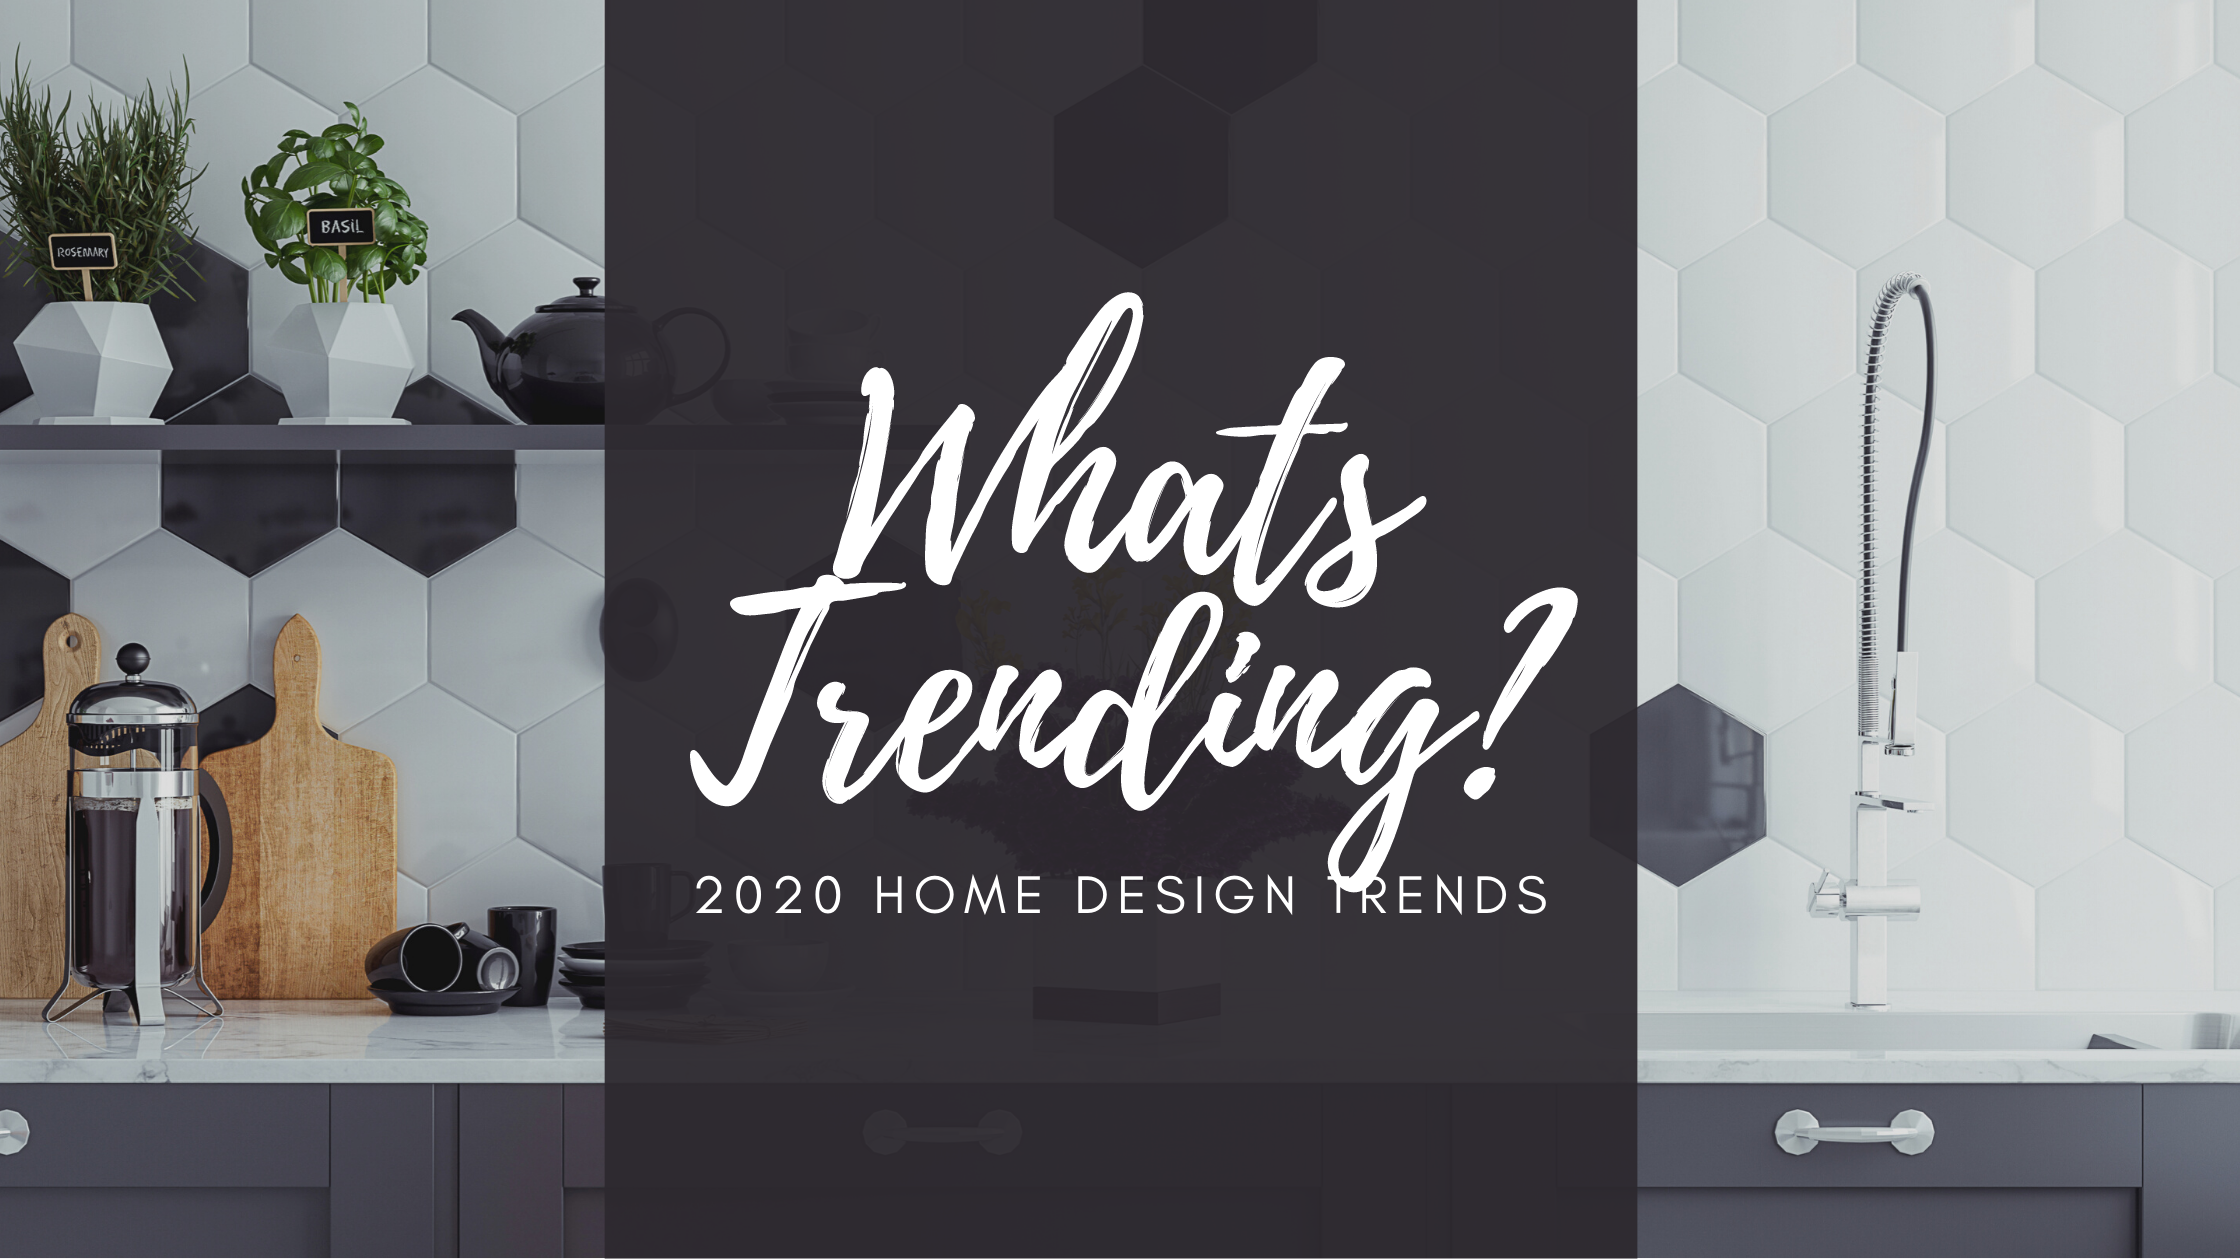 Whats trending? 2020 home design trends